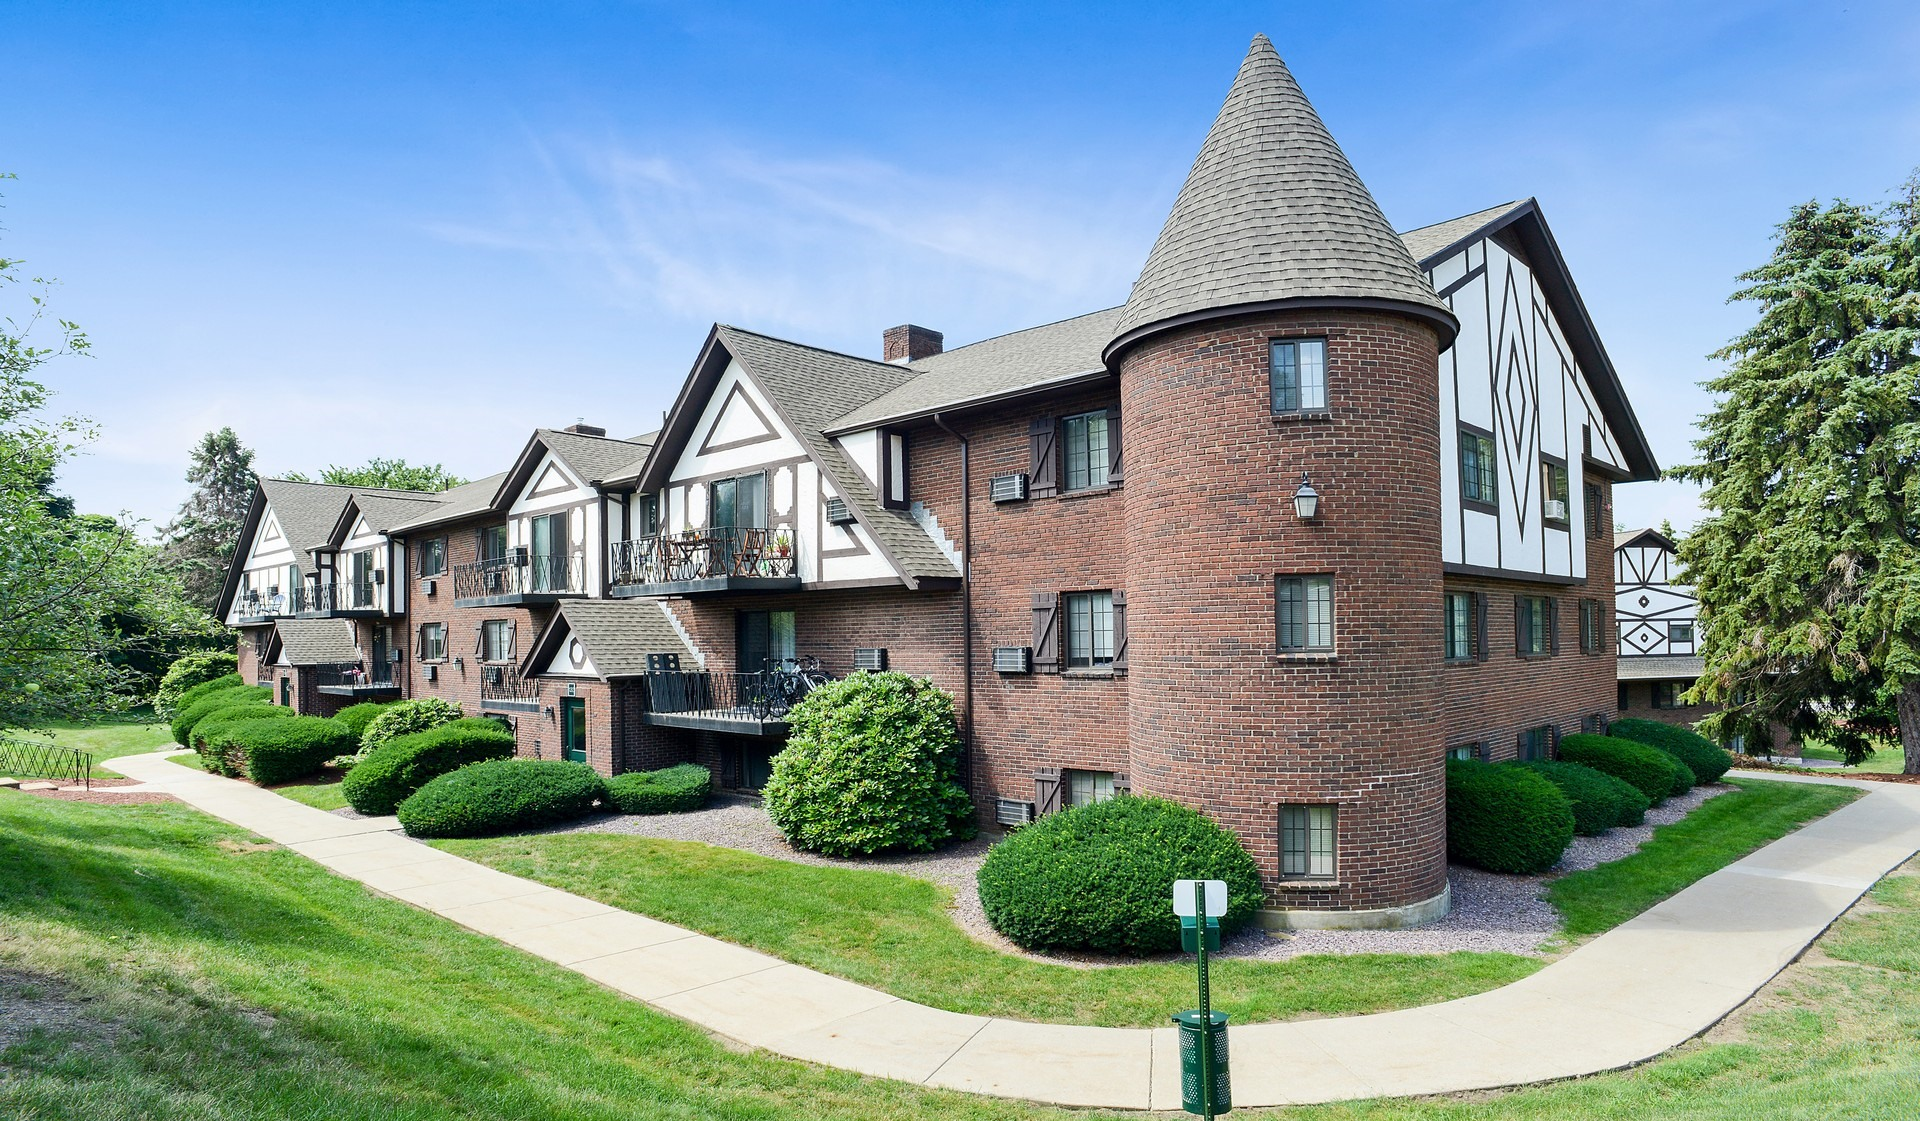 Royal Crest Marlboro Apartment Homes for rent in Marlborough, MA - Great Location